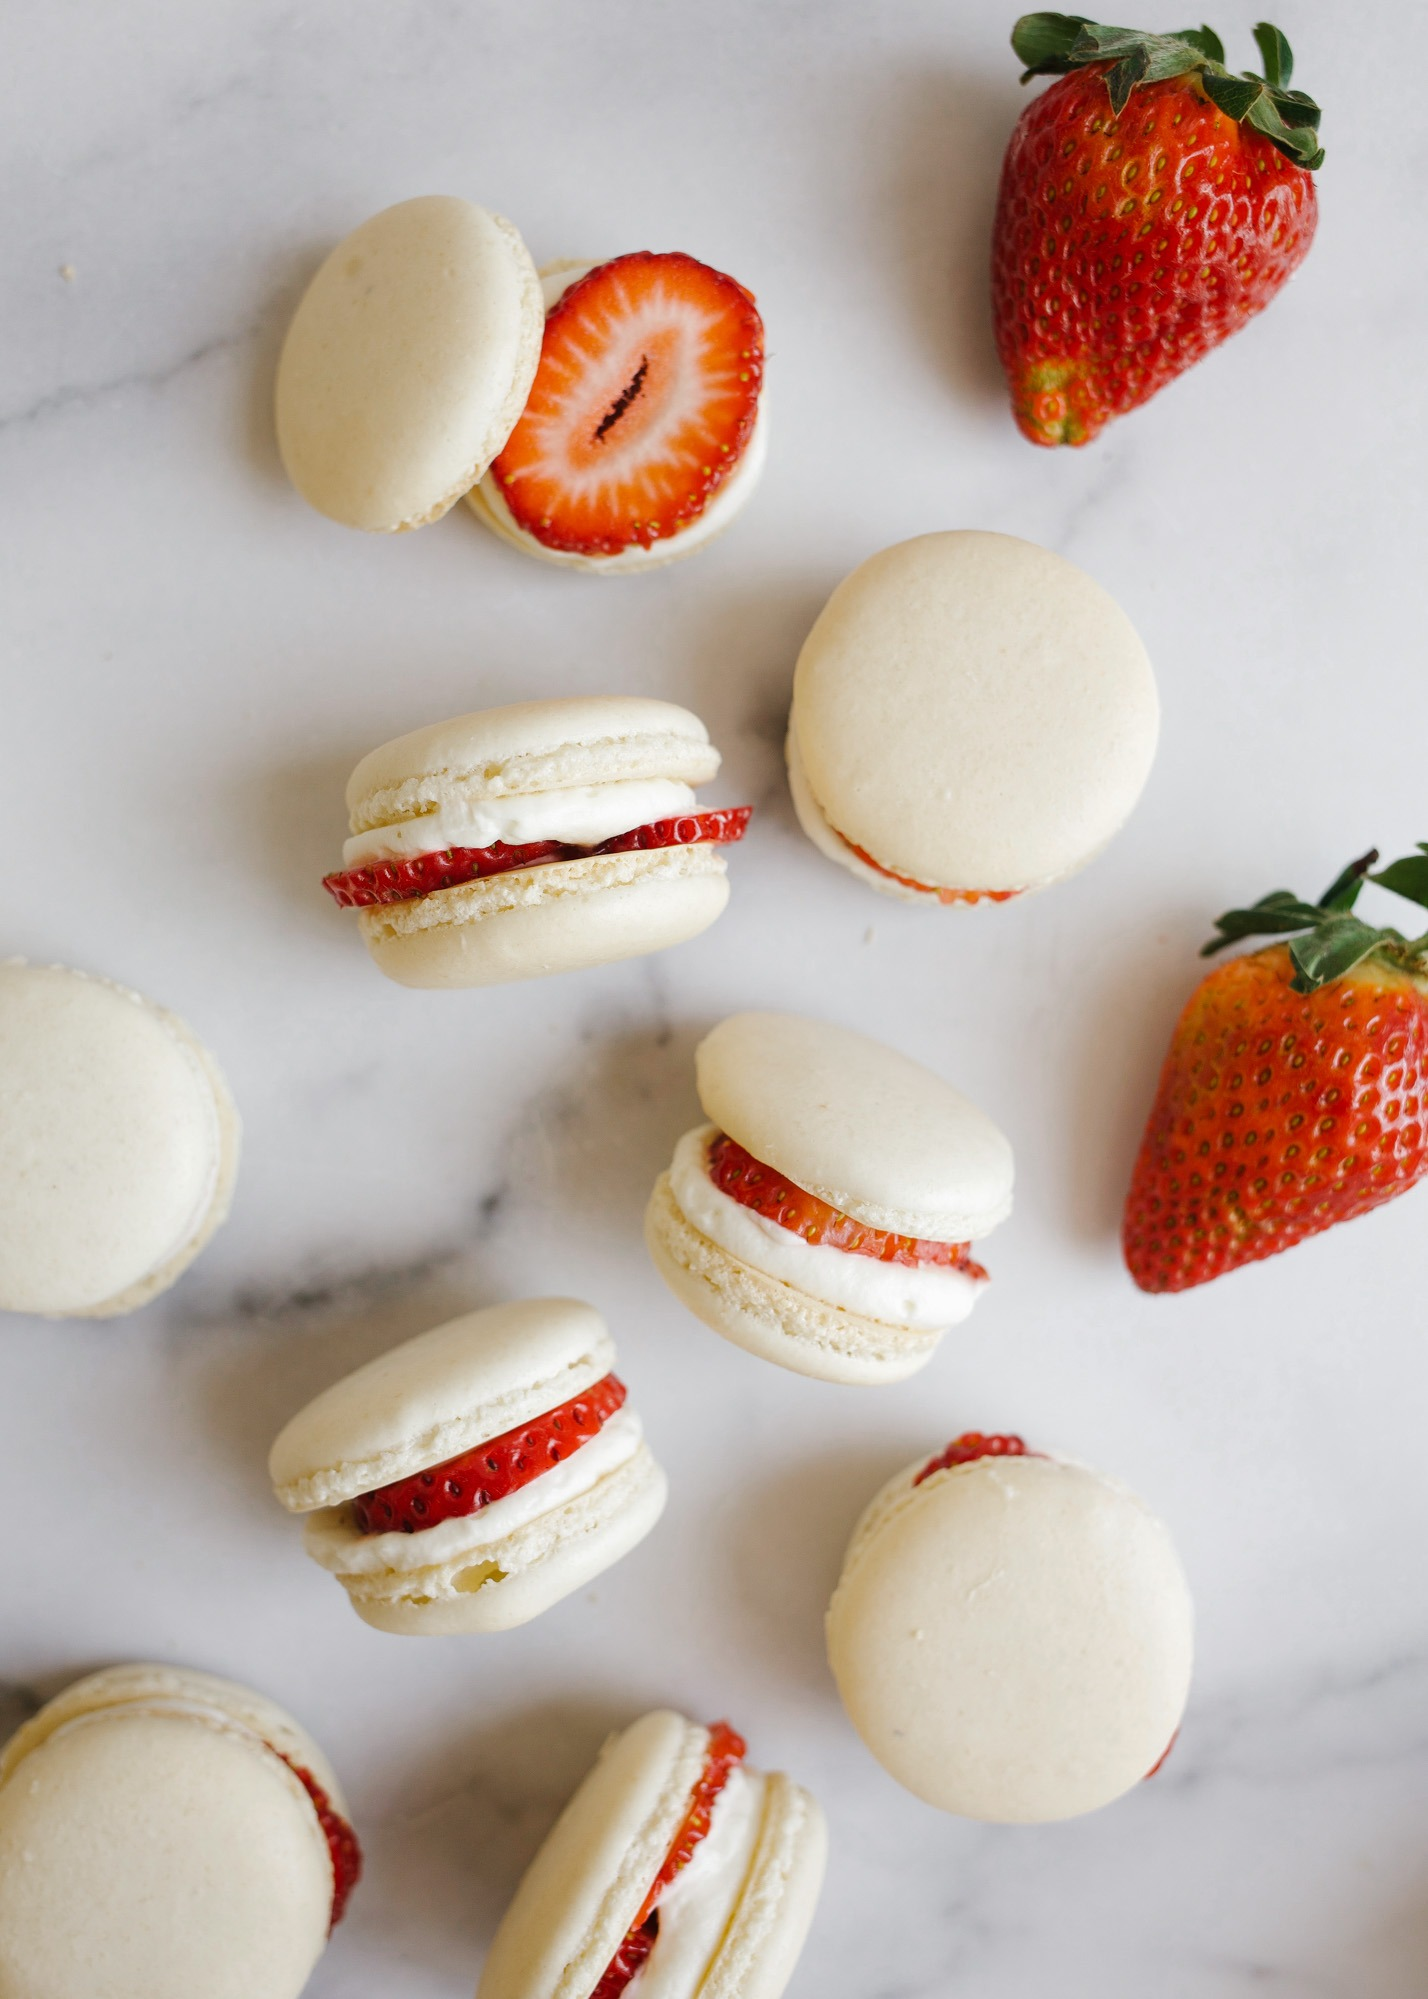 Strawberry Shortcake Macarons and Mother's Day gift guide by wood and spoon. These are simple homemade macarons filled with whipped cream, strawberry jam, and fresh fruit. These taste like a shortcake in cookie form. Gifts for mom's on your list including cookbook, jewelry, beauty and home supplies, and more. Read all about these fancy spring desserts and learn how to make them on thewoodandspoon.com